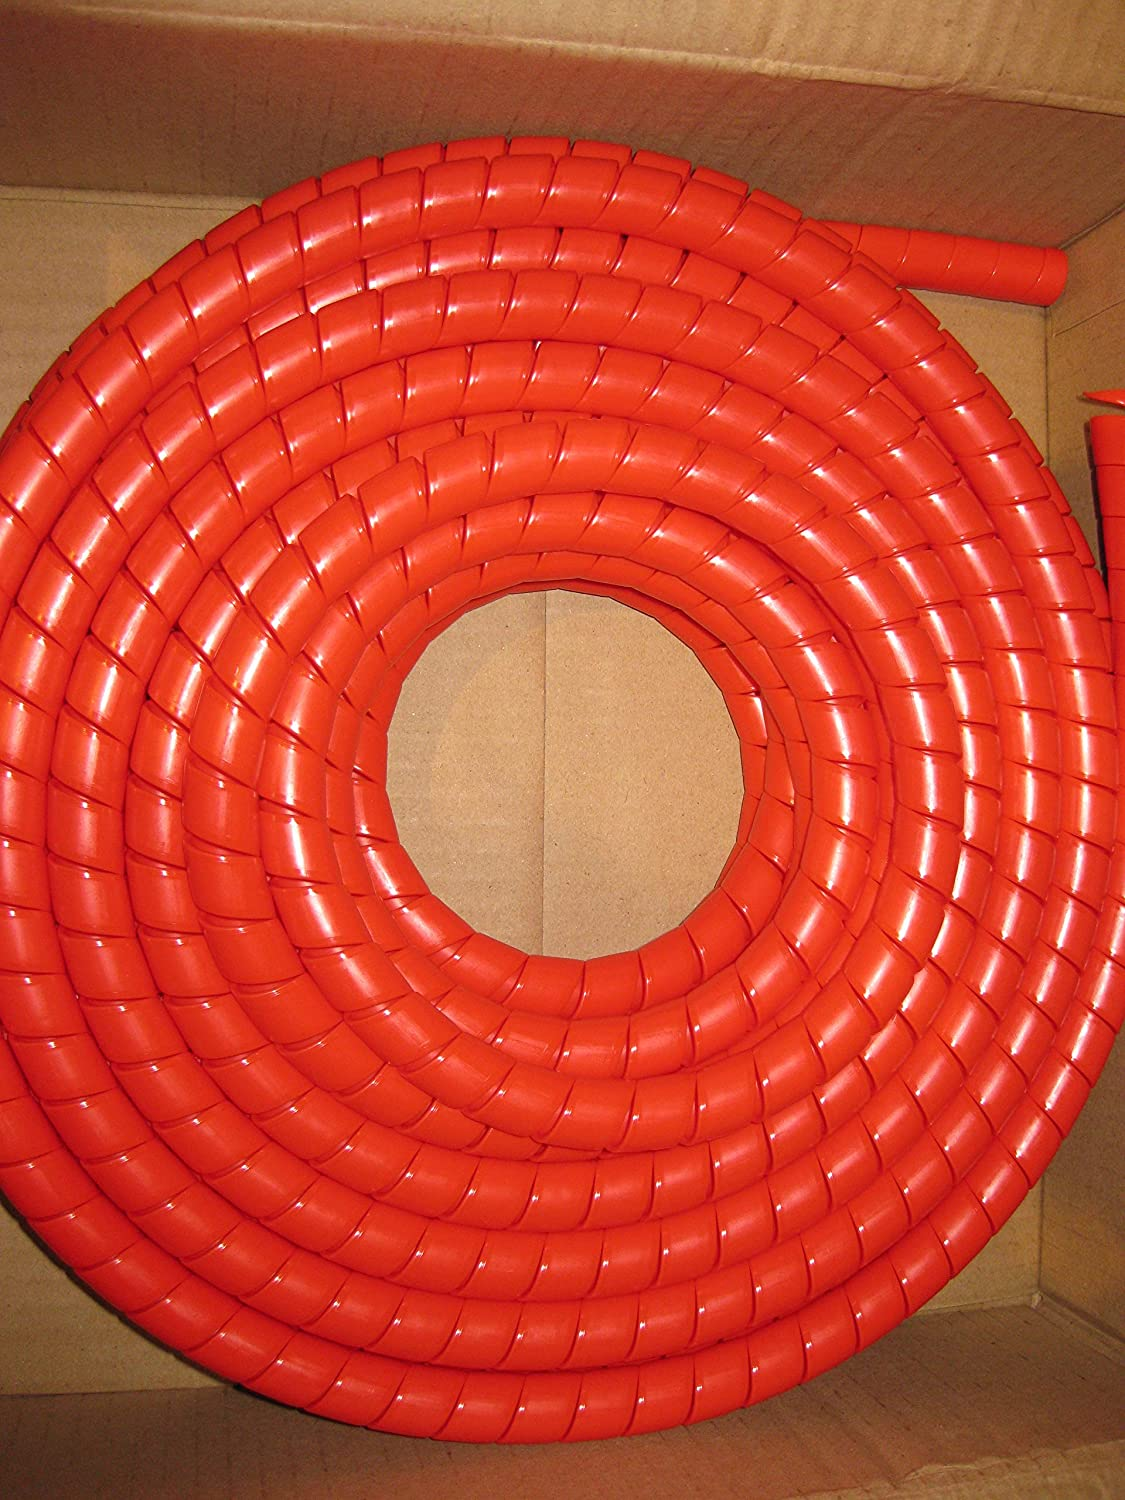 Hydraulic Hose Spiral Wrap Guard Potection 18-24mm JCB Forestry Tractor Digger 20 Meter